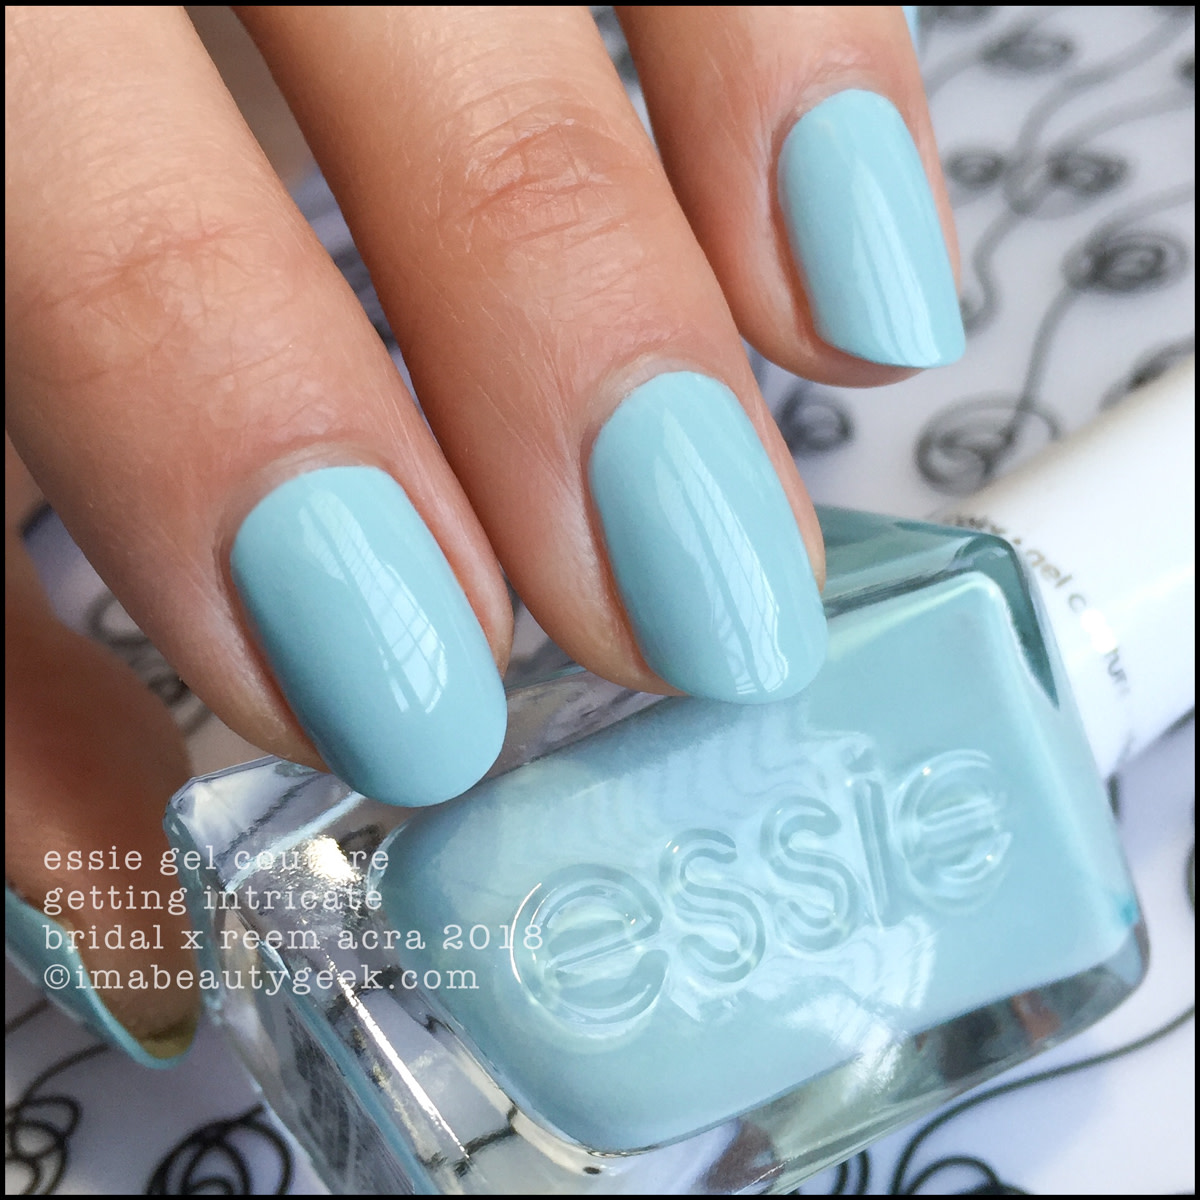 Essie Getting Intricate - Essie Bridal x Reem Acra Gel Couture 2018